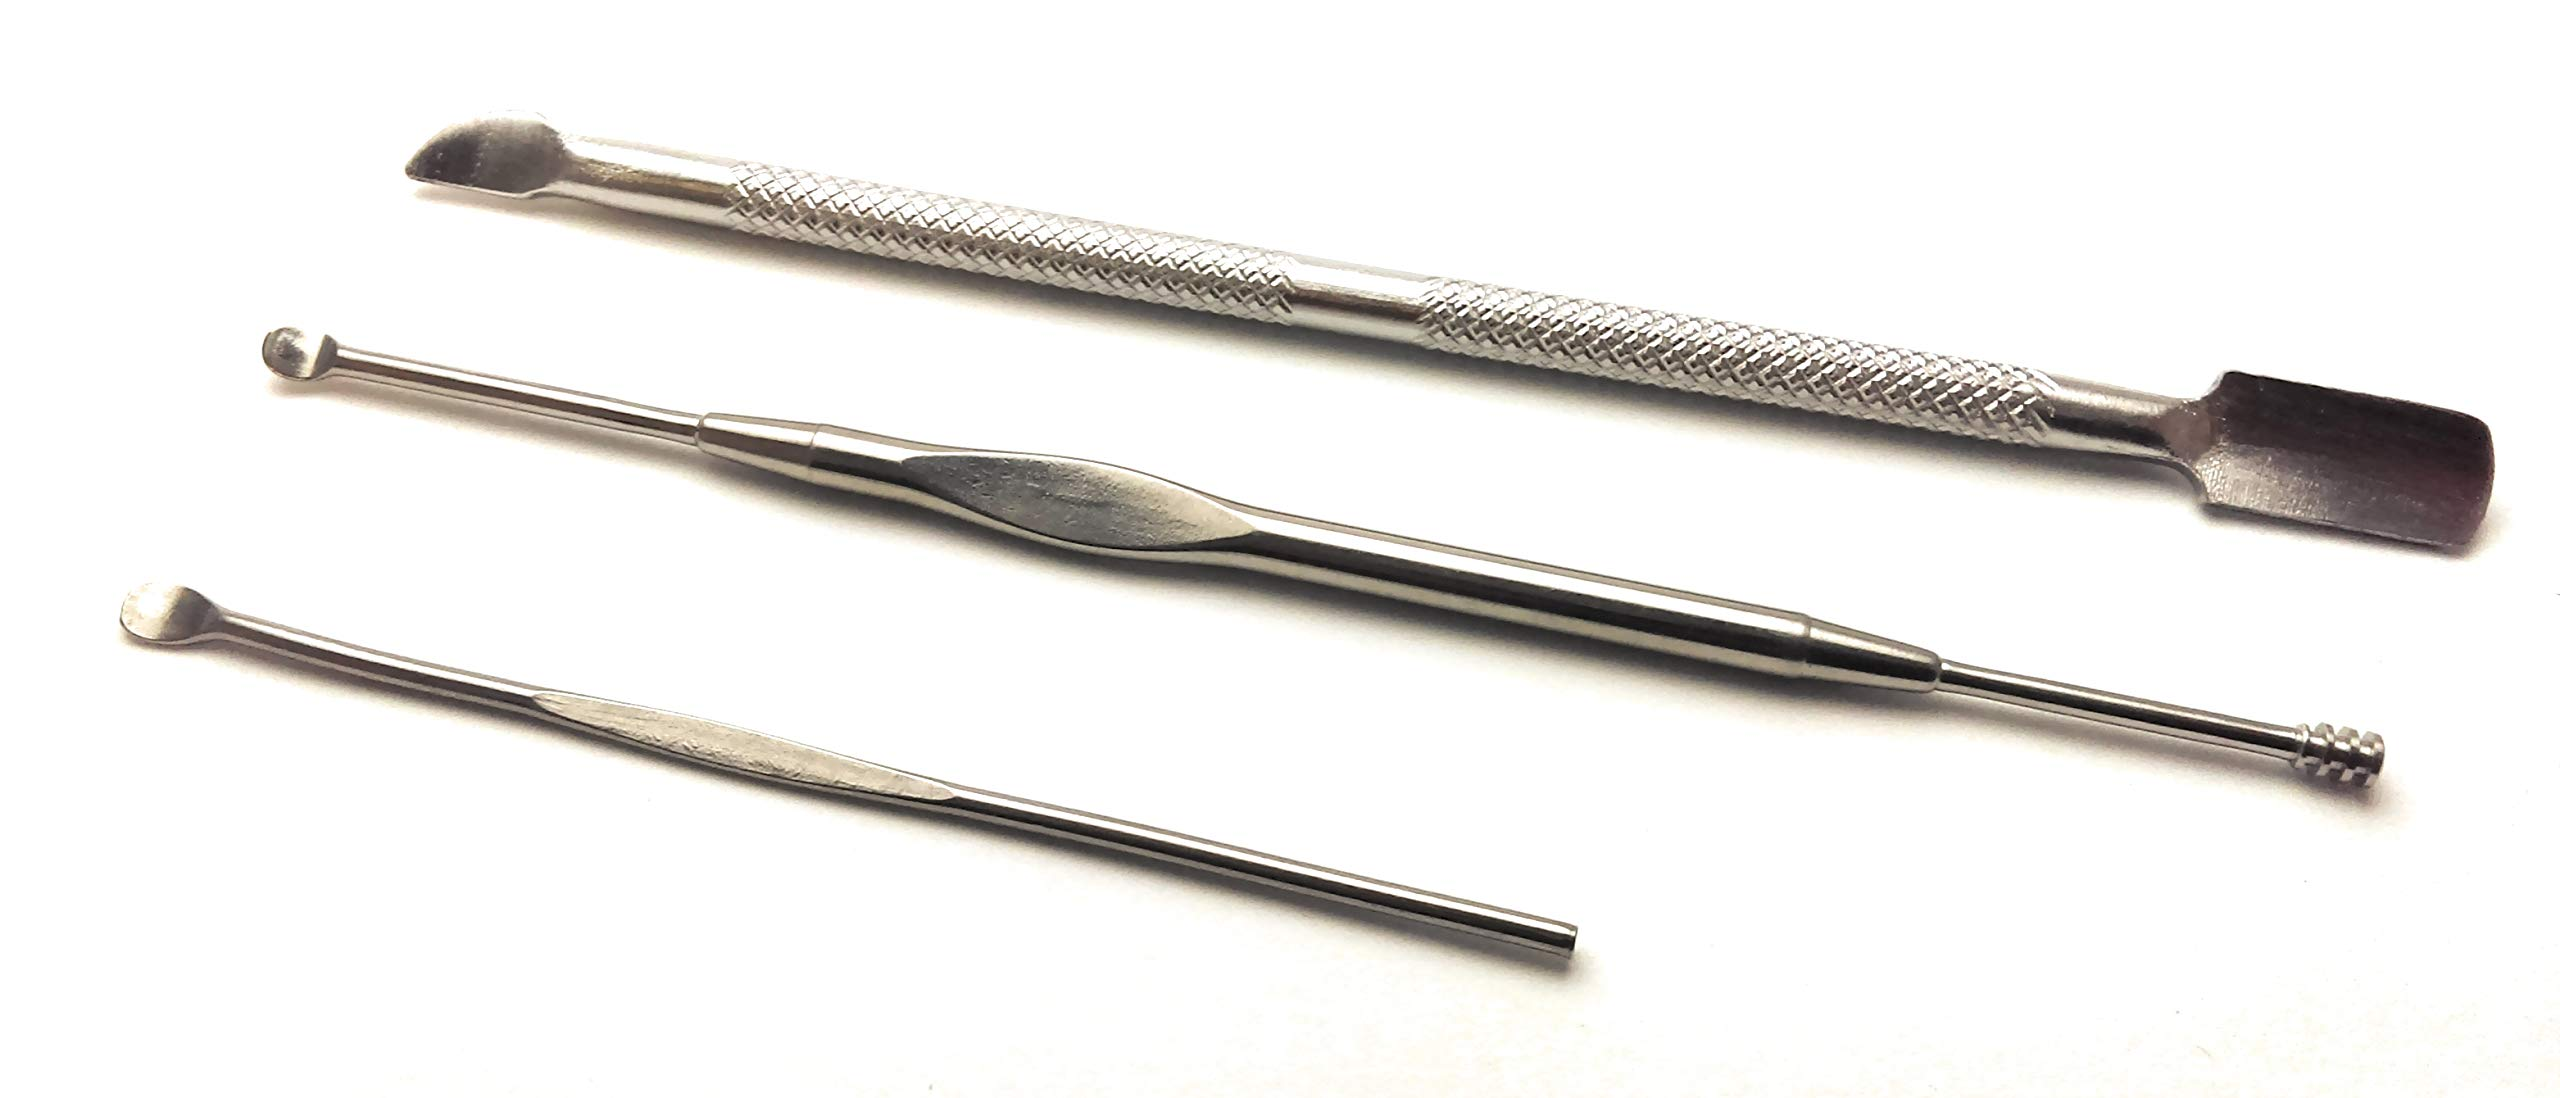 Vape Pipe Cleaning Tools 3 Different Types, Stainless Steel for Vape PAX & Kandy, Micro DX by King Van